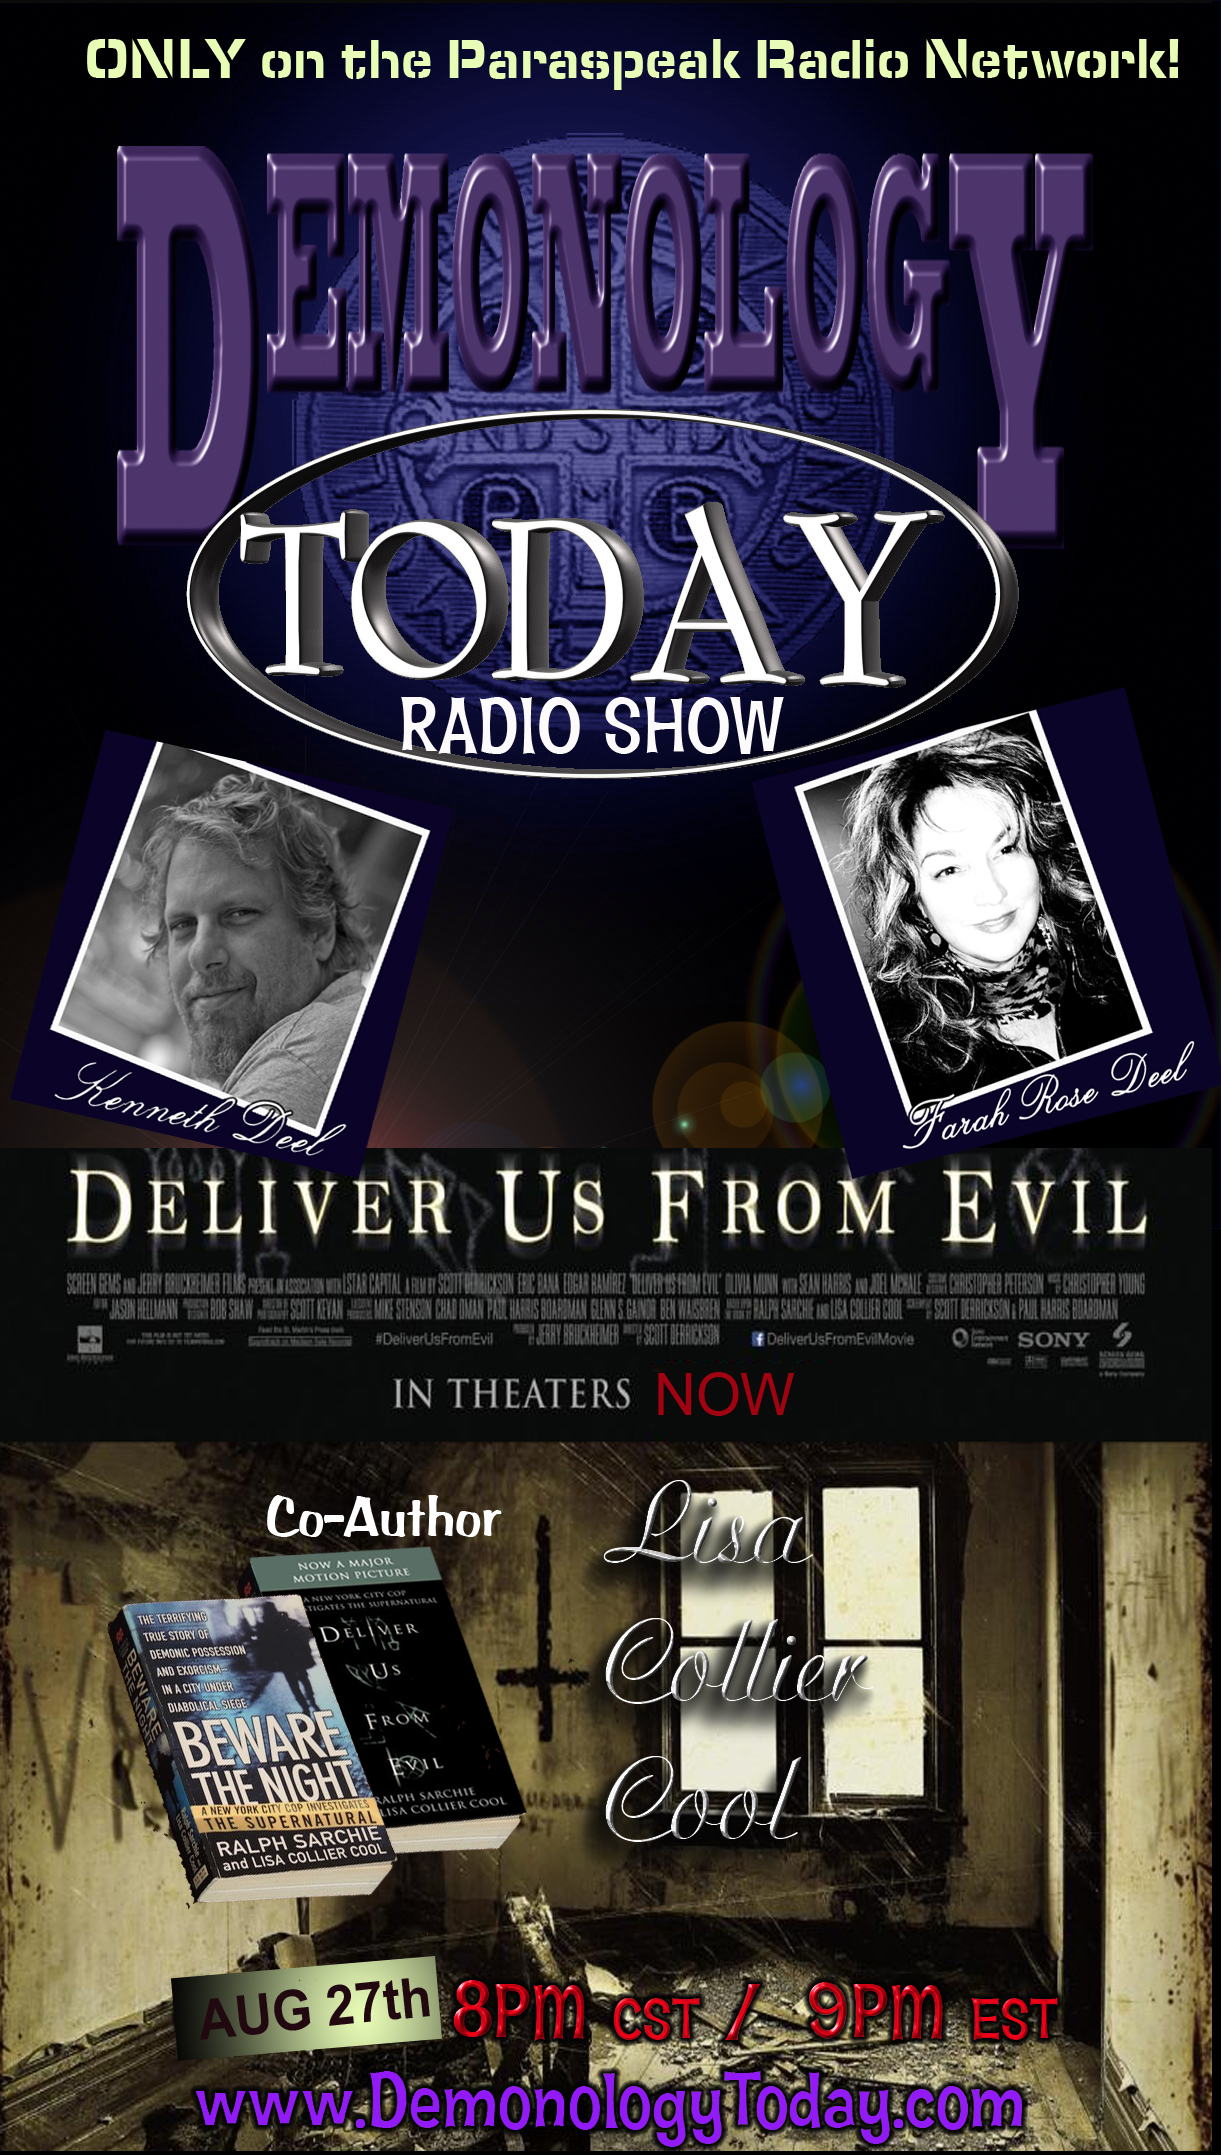 "Lisa Collier Cool - Co_Author ""Deliver us from Evil"" (Originally titled ""Beware the Night"""